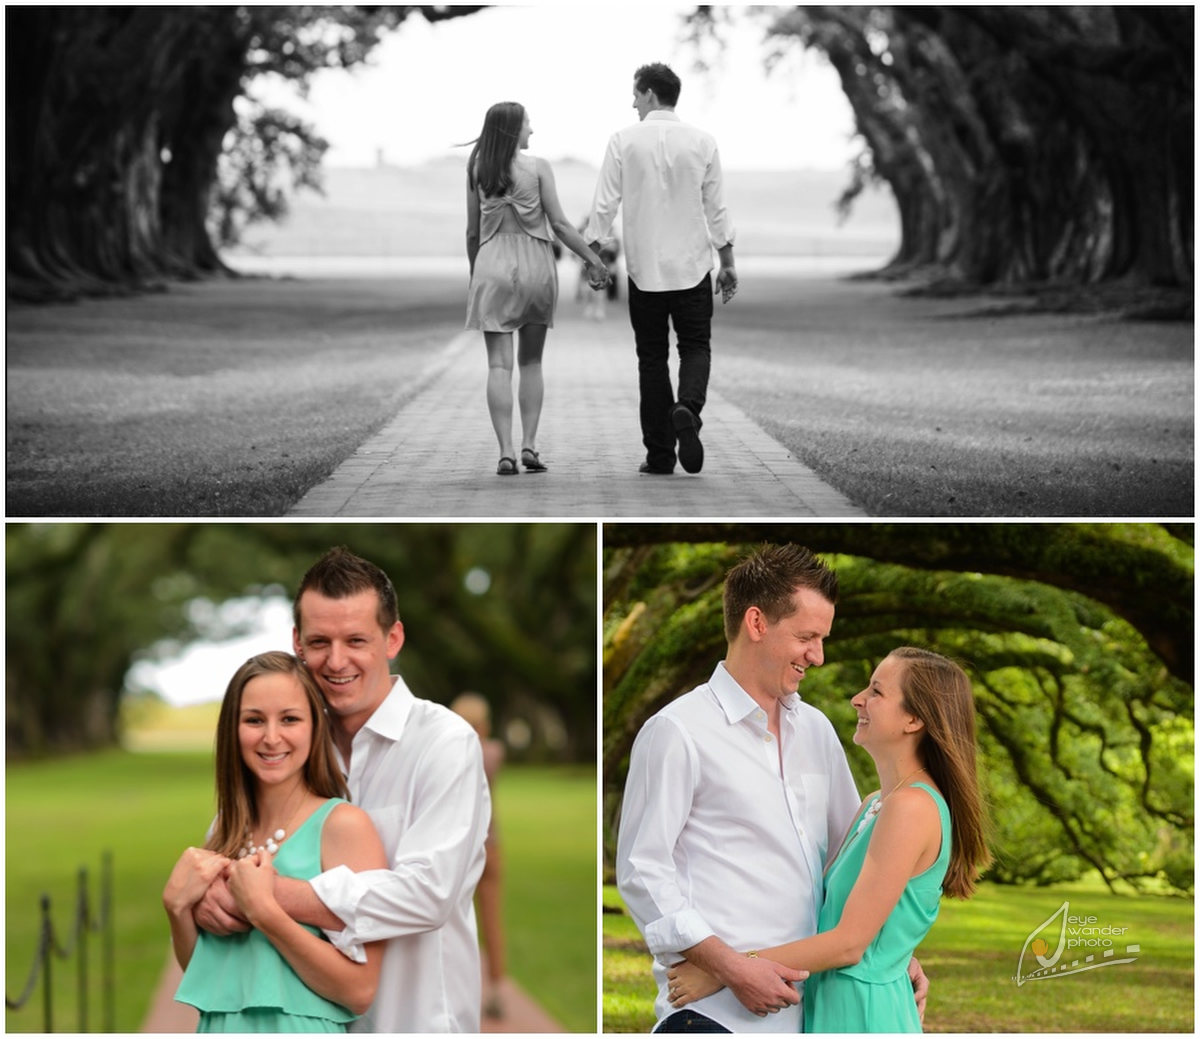 diptic2A Proposal session | Oak Alley Plantation | May 12, 2013